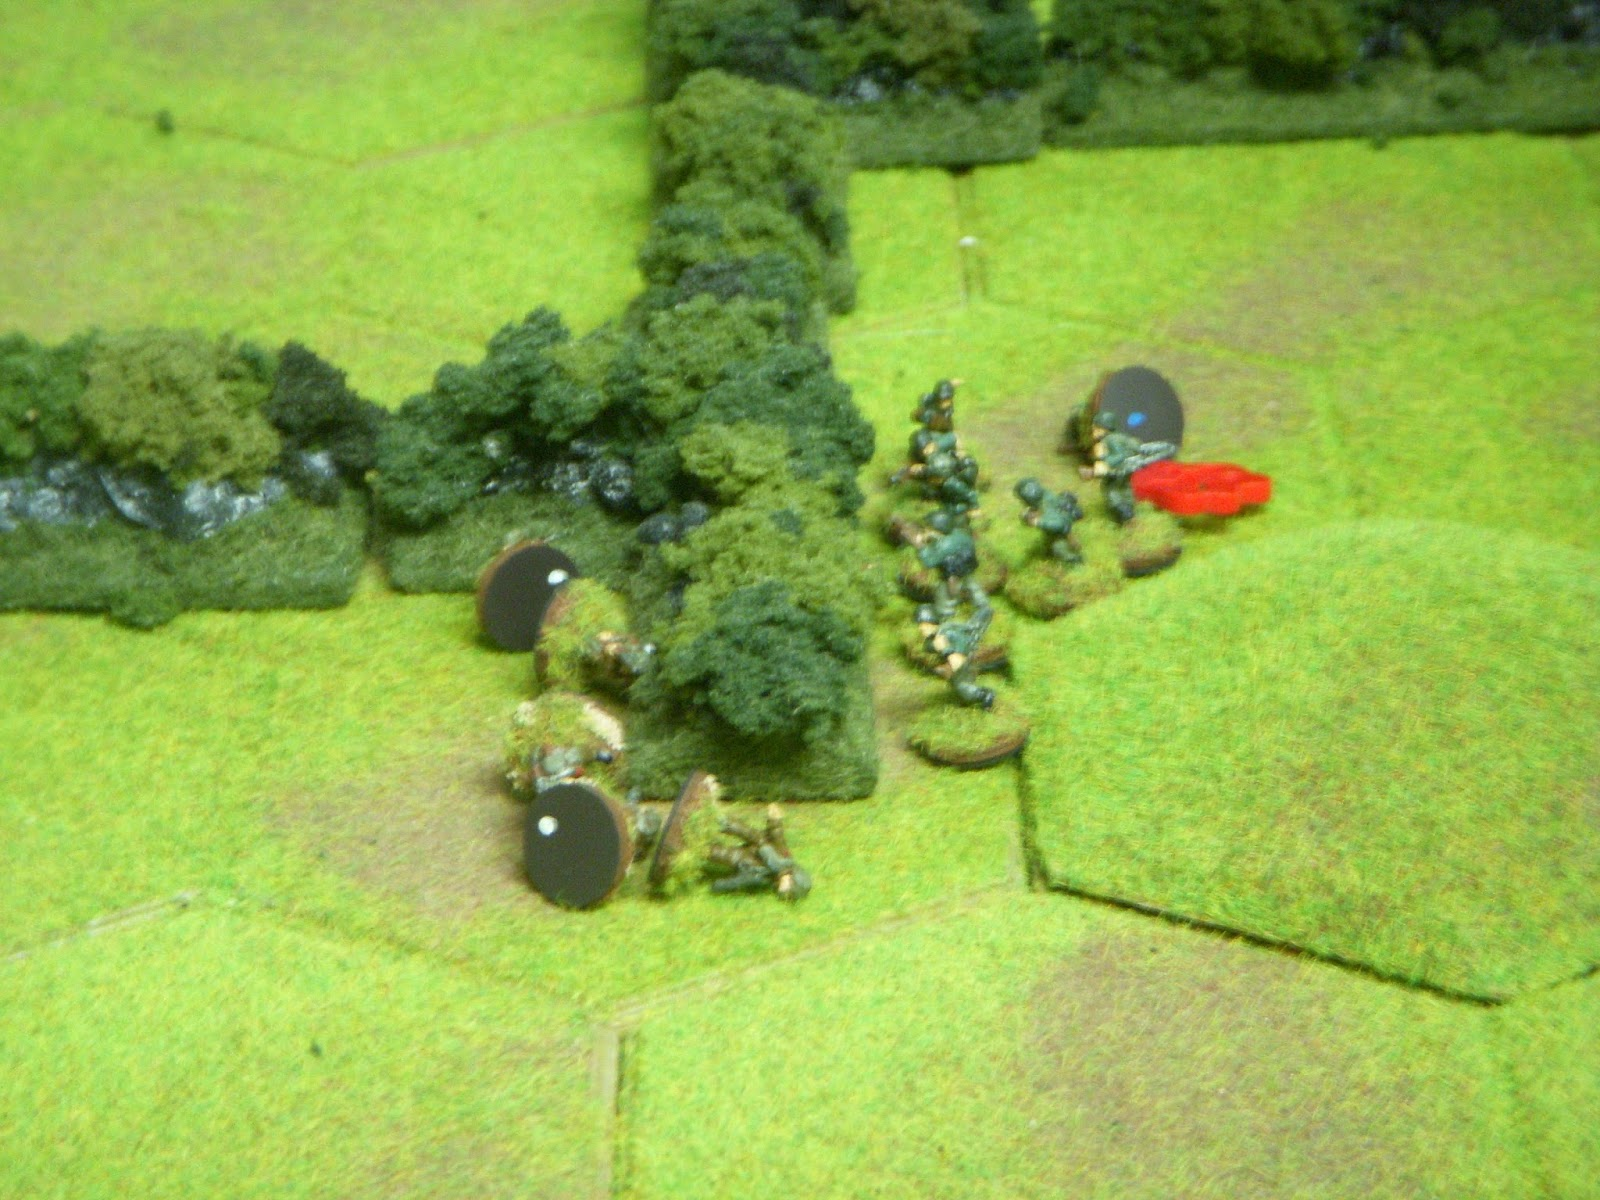 A squad in the centre is not so lucky: five men down in an ambush